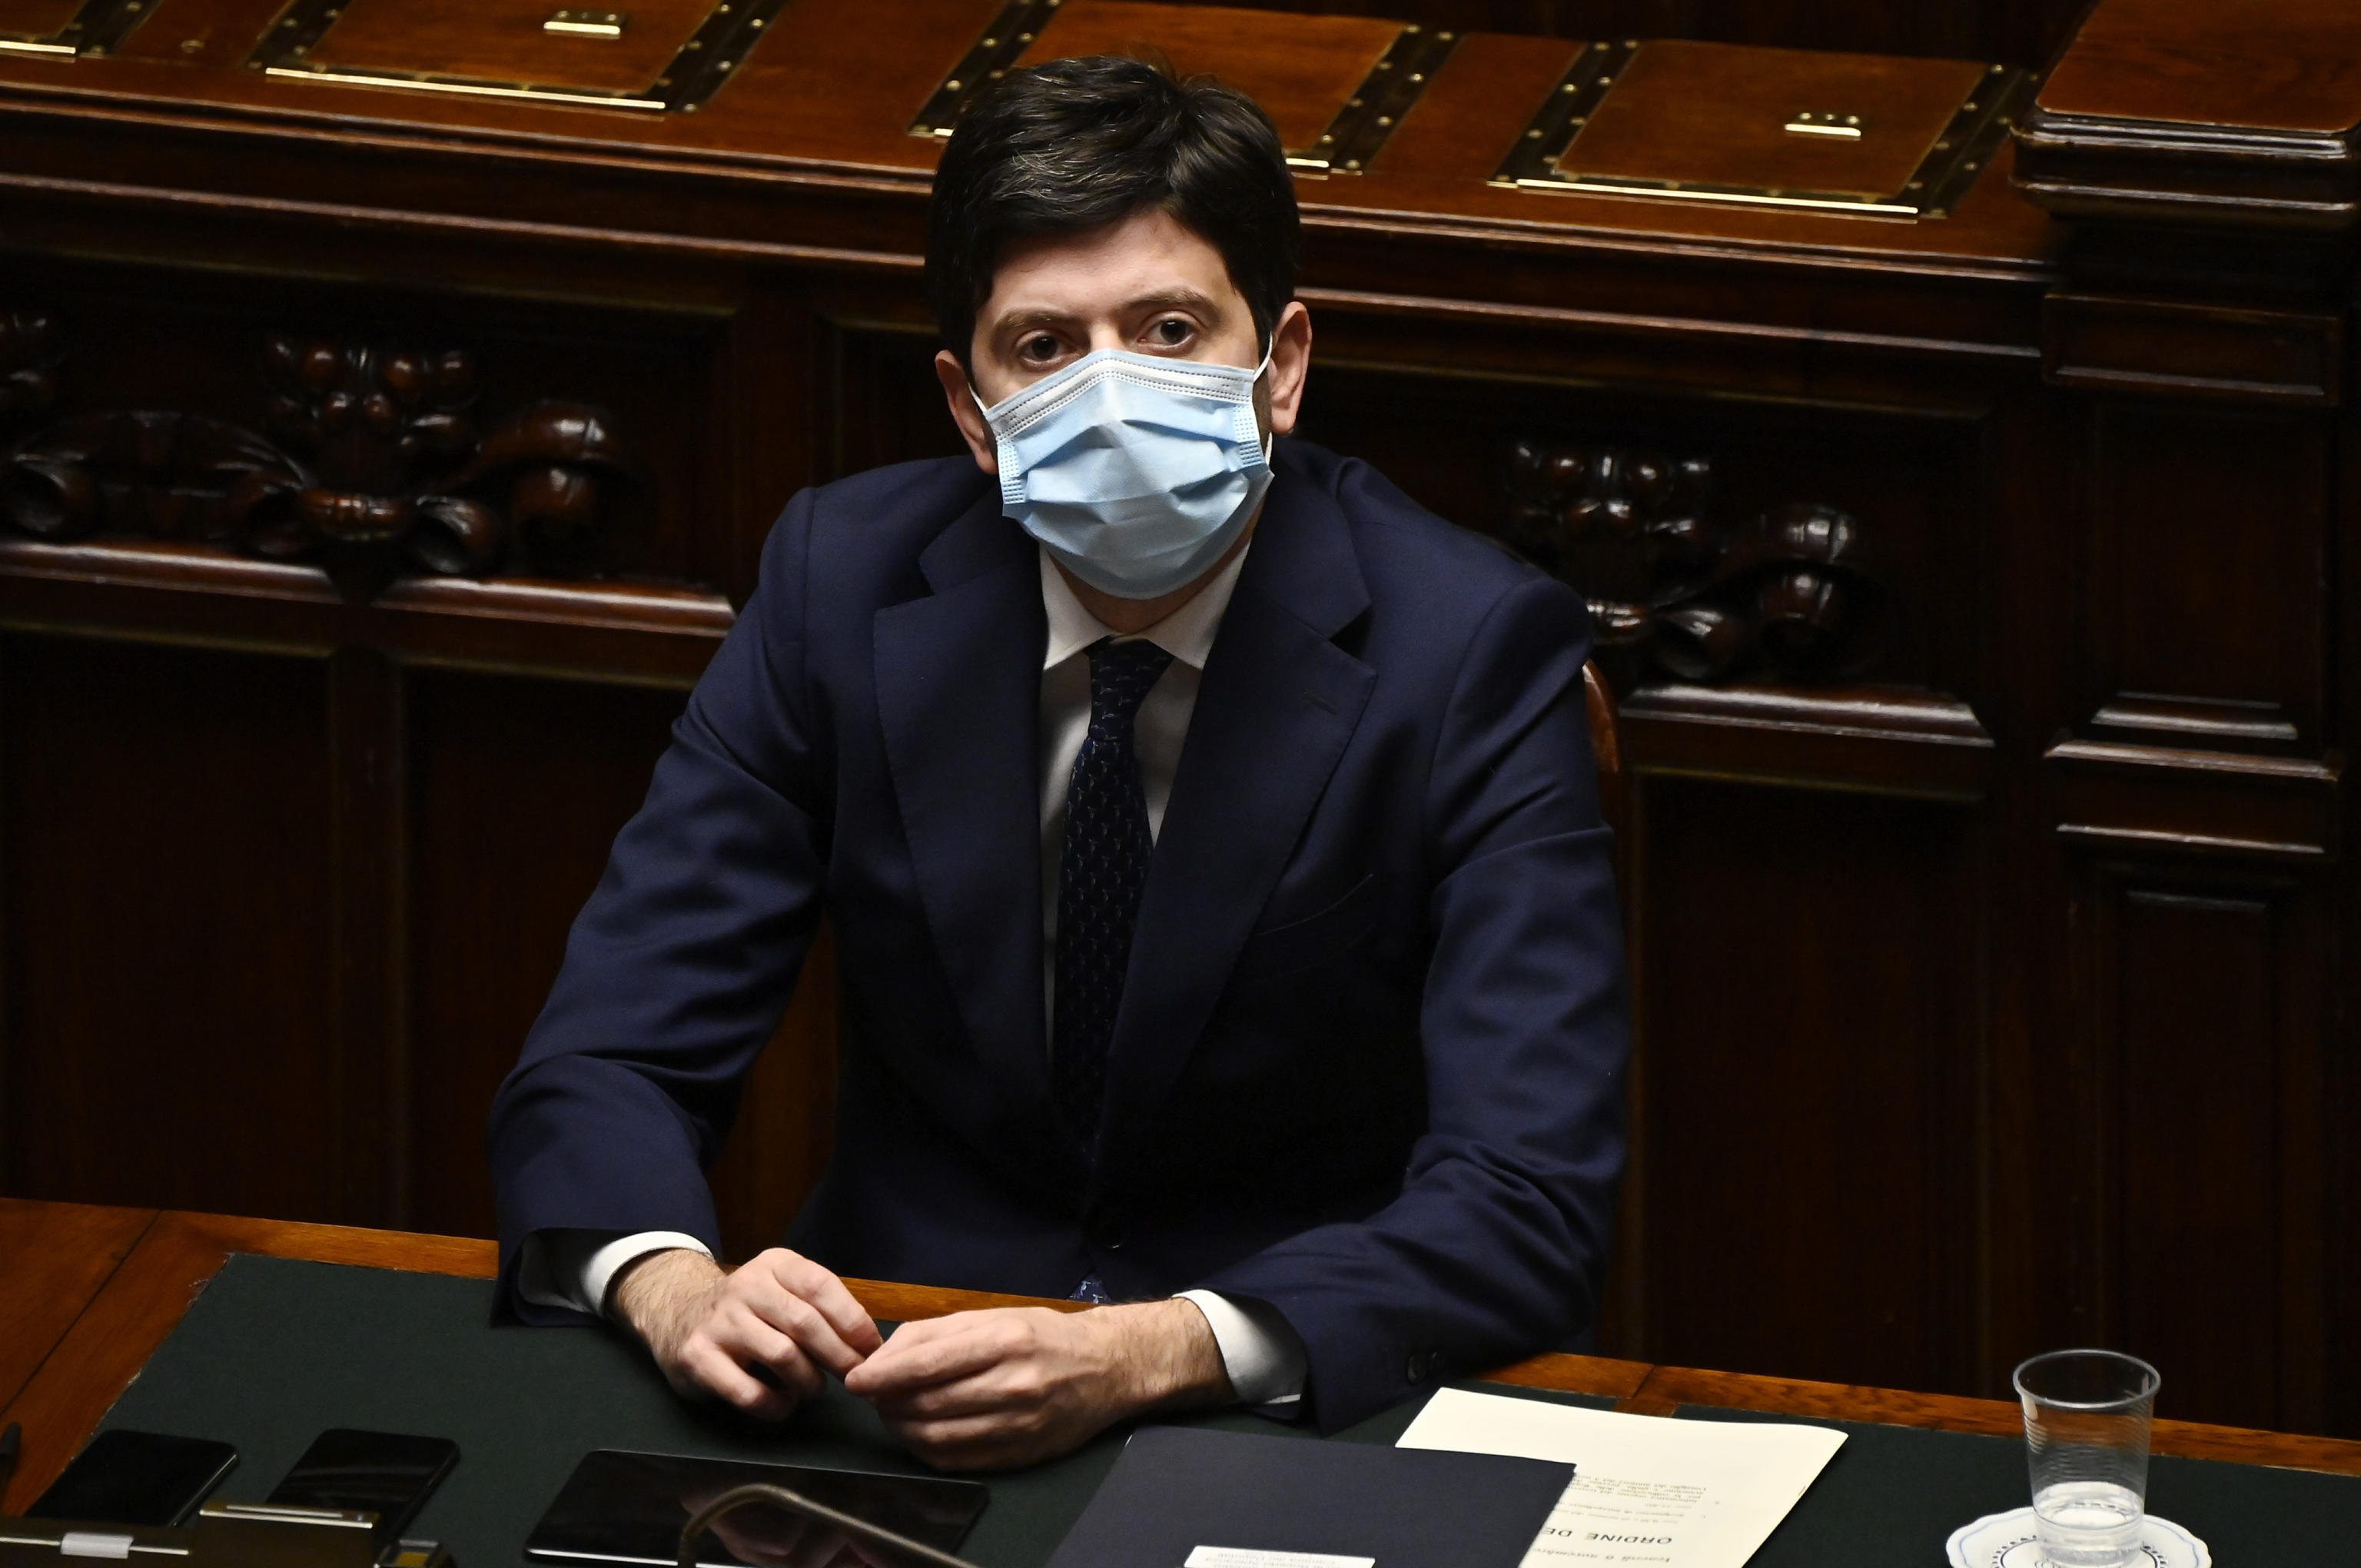 Italian Minister of Health, Roberto Speranza, delivers his speech at the Chamber of Deputies to report on the new decree issued by the Government to counter the spread of Covid-19 pandemic, Rome, Italy, 05 November 2020.  ANSA / RICCARDO ANTIMIANI